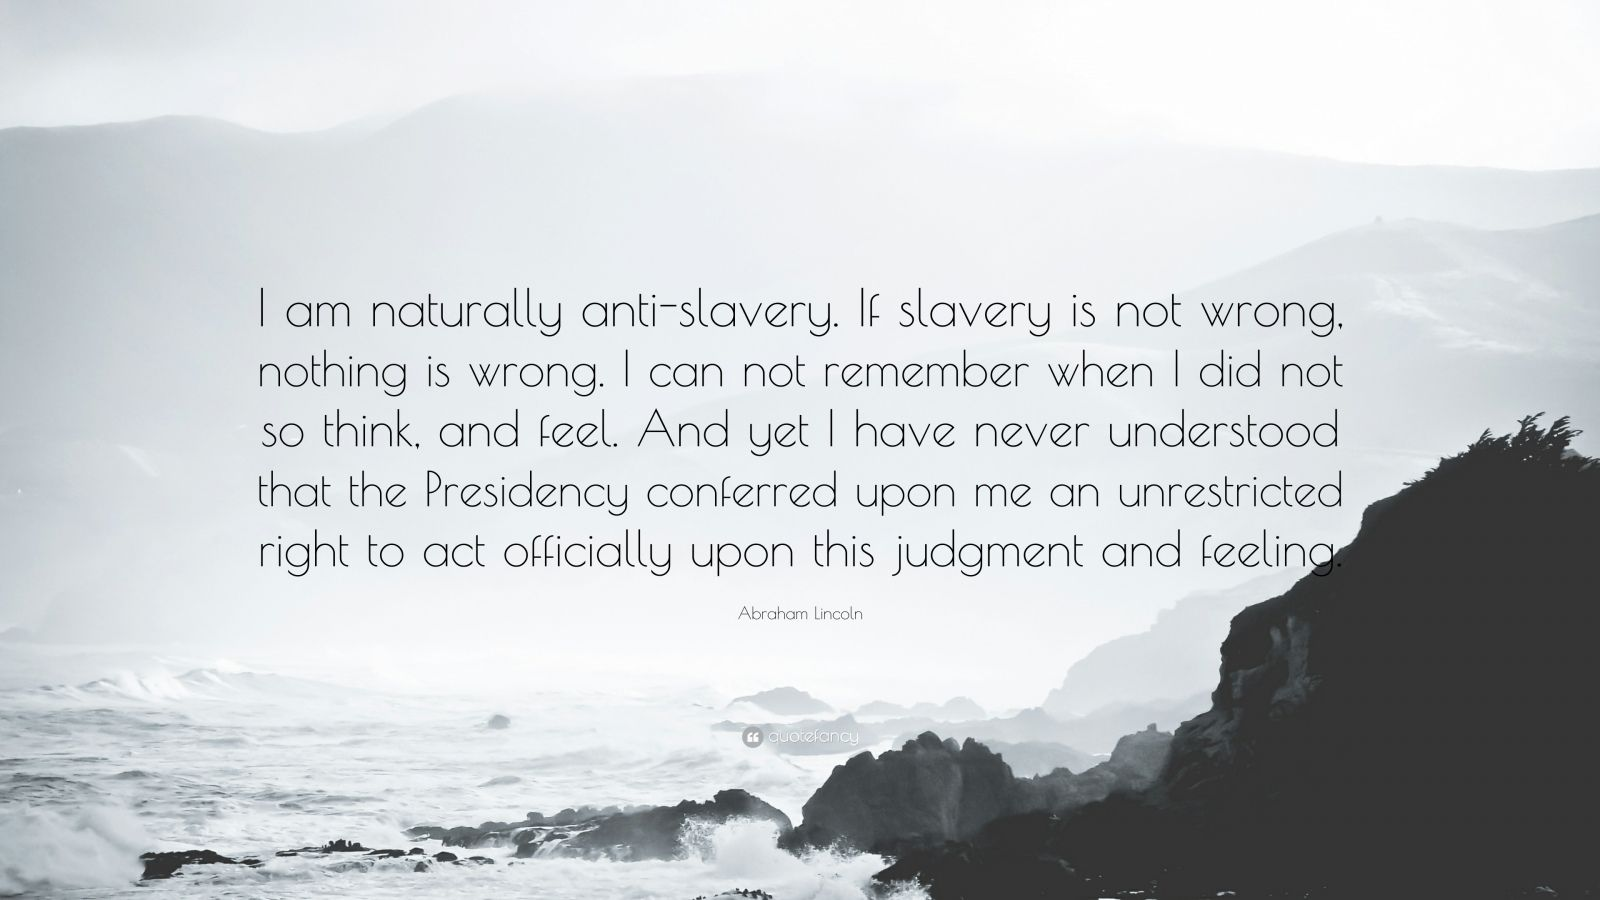 "Abraham Lincoln Quote: ""I am naturally anti-slavery. If slavery is not wrong, nothing is wrong. I can not remember when I did not so think, and feel. And yet I have never understood that the Presidency conferred upon me an unrestricted right to act officially upon this judgment and feeling."""